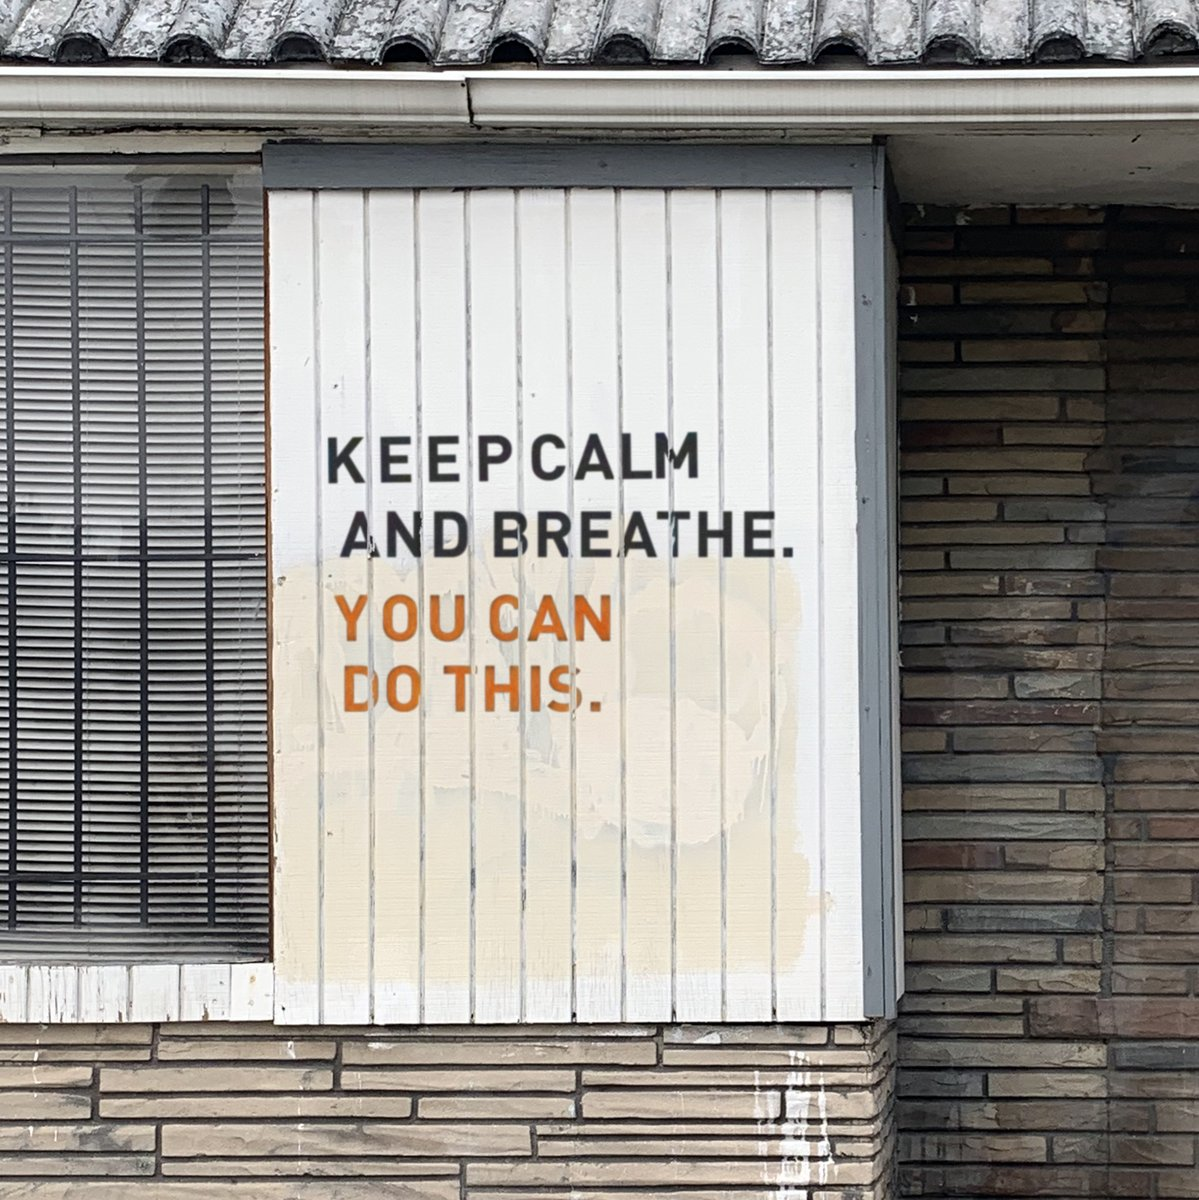 "#ThisIsQuitting user Jay has this to say to anyone struggling to quit vaping: ""Keep calm and breathe. You CAN do this. It will be hard but it WILL be worth it. Keep your head up and keep trying."" Start your quitting journey + text DITCHVAPE to 88709. https://t.co/cJuxYnmxpg"